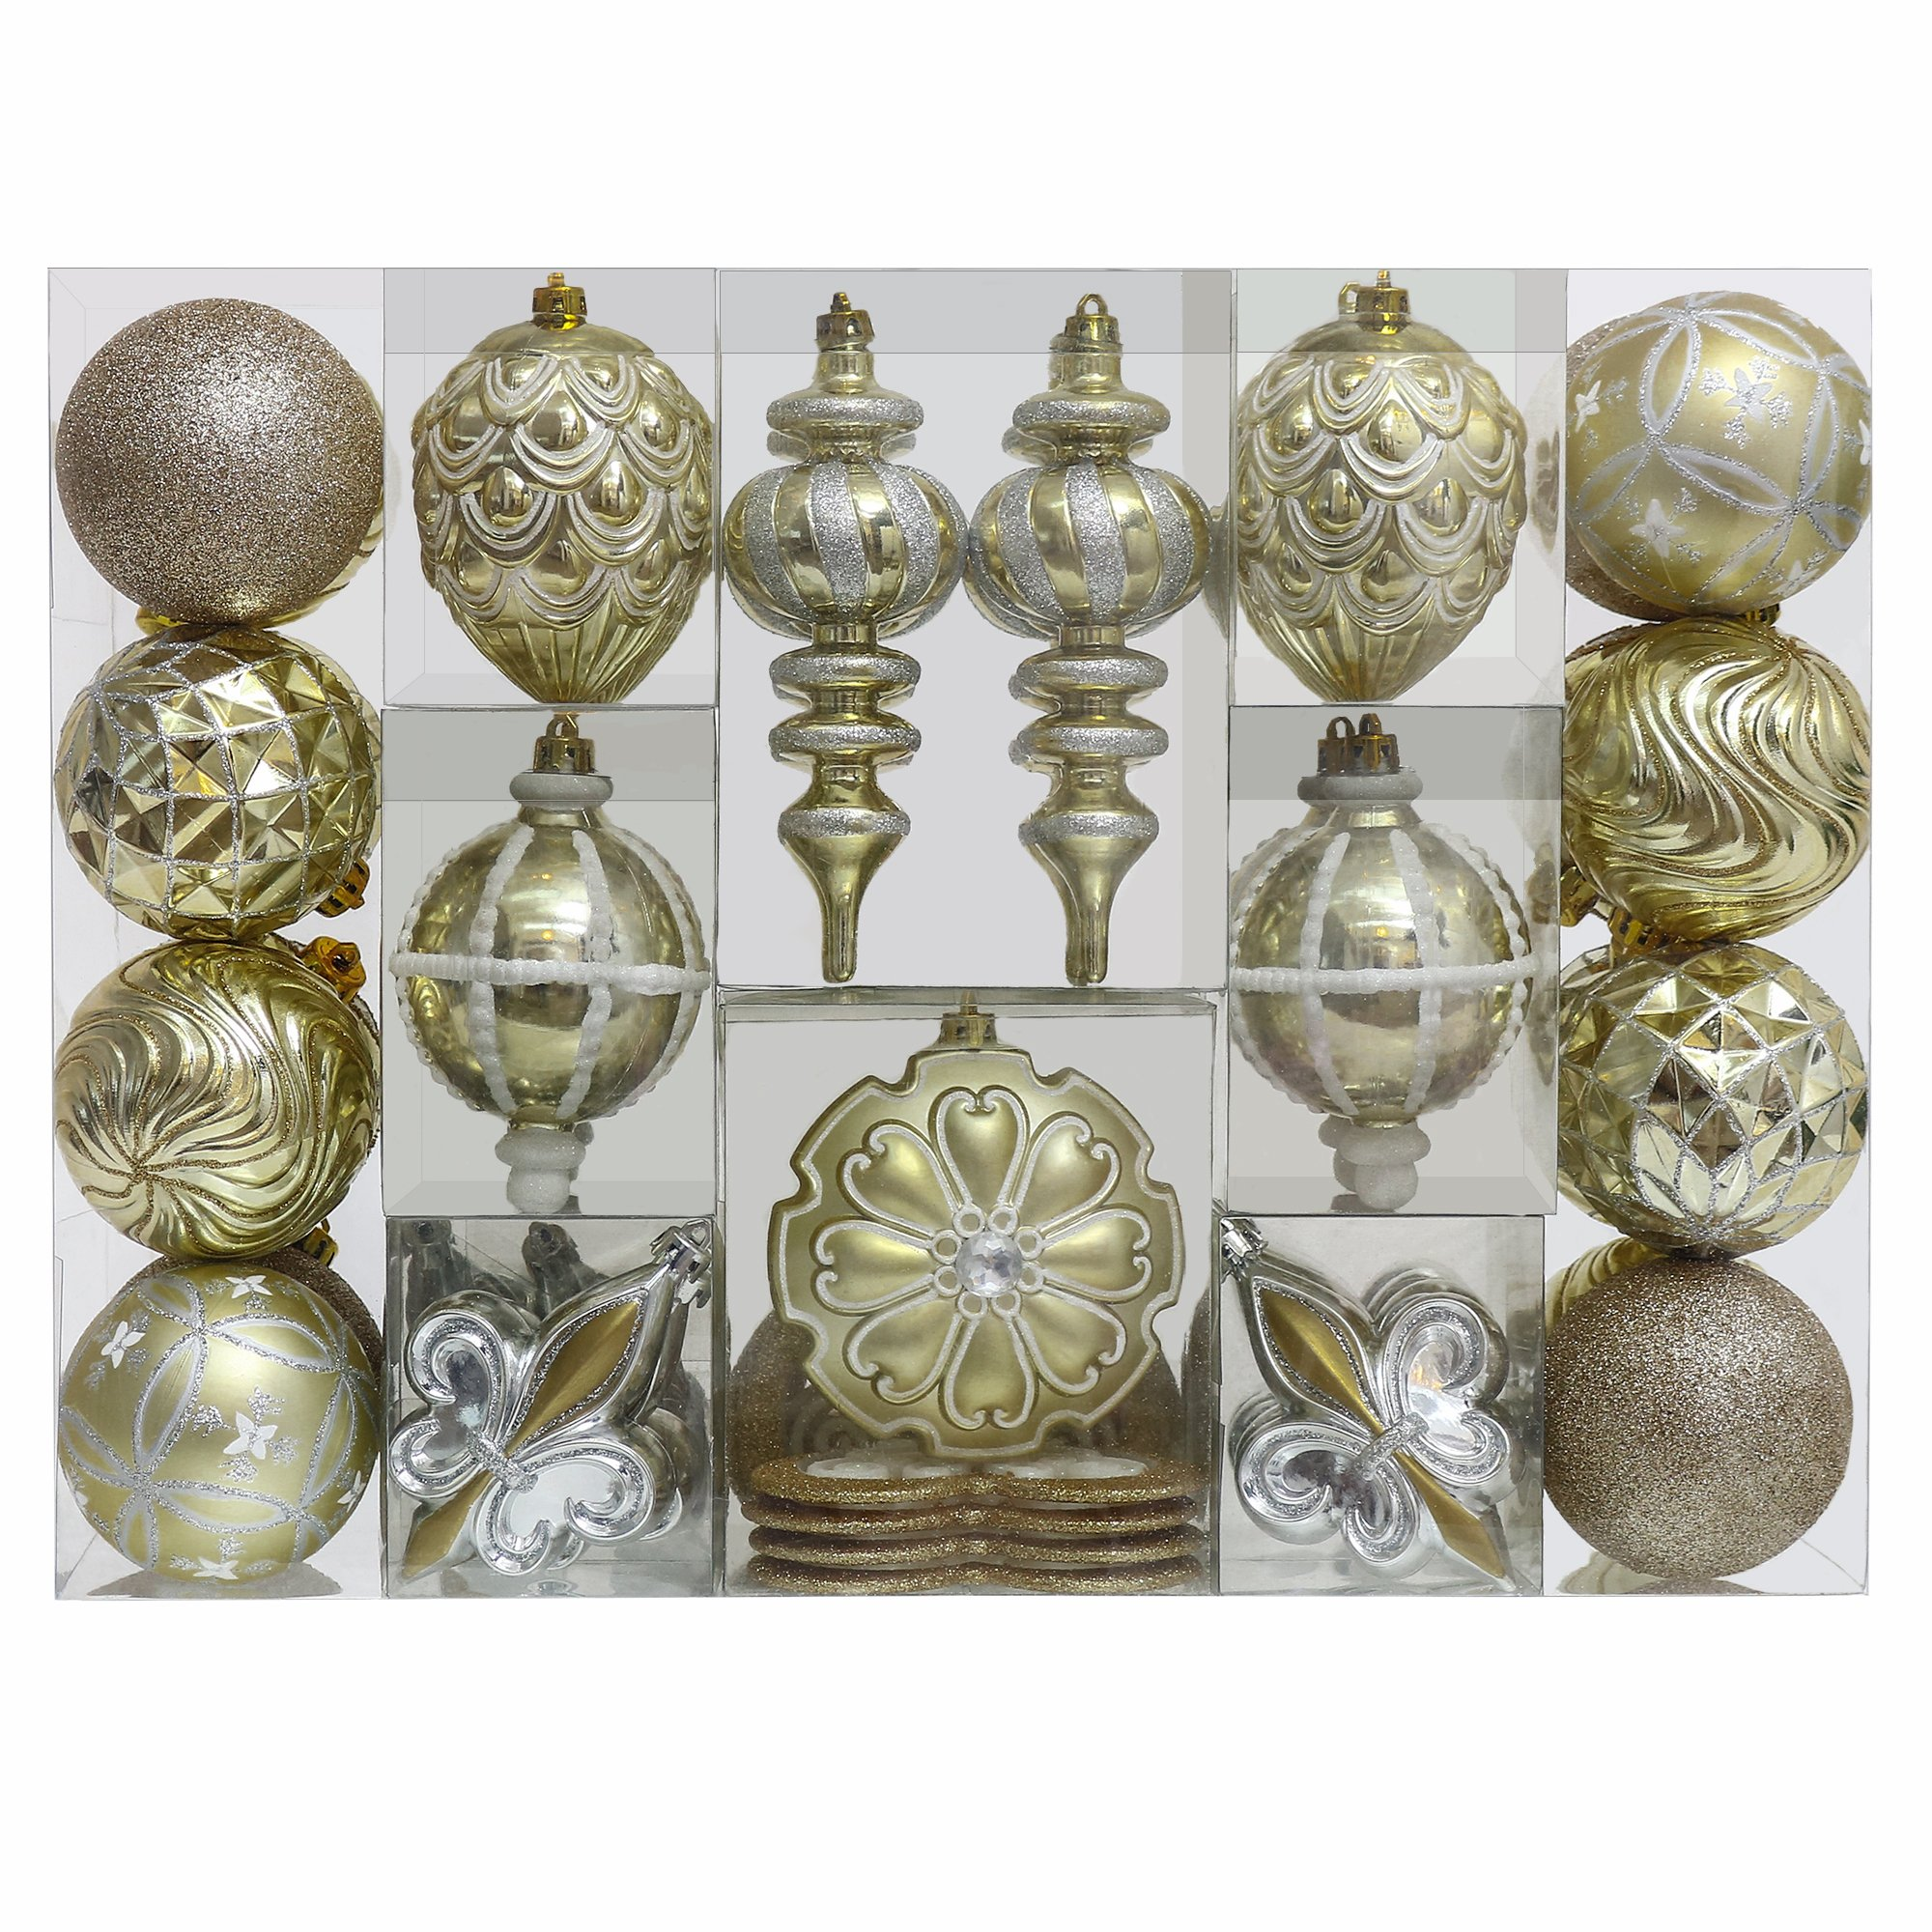 V&M VALERY MADELYN 50ct Shatterproof Christmas Balls Ornaments Luxury Gold Beige,3.15inch-6.3inch /8CM-16CM,50 Pcs Metal Hooks Included,Themed with Tree Skirt(Not Included)